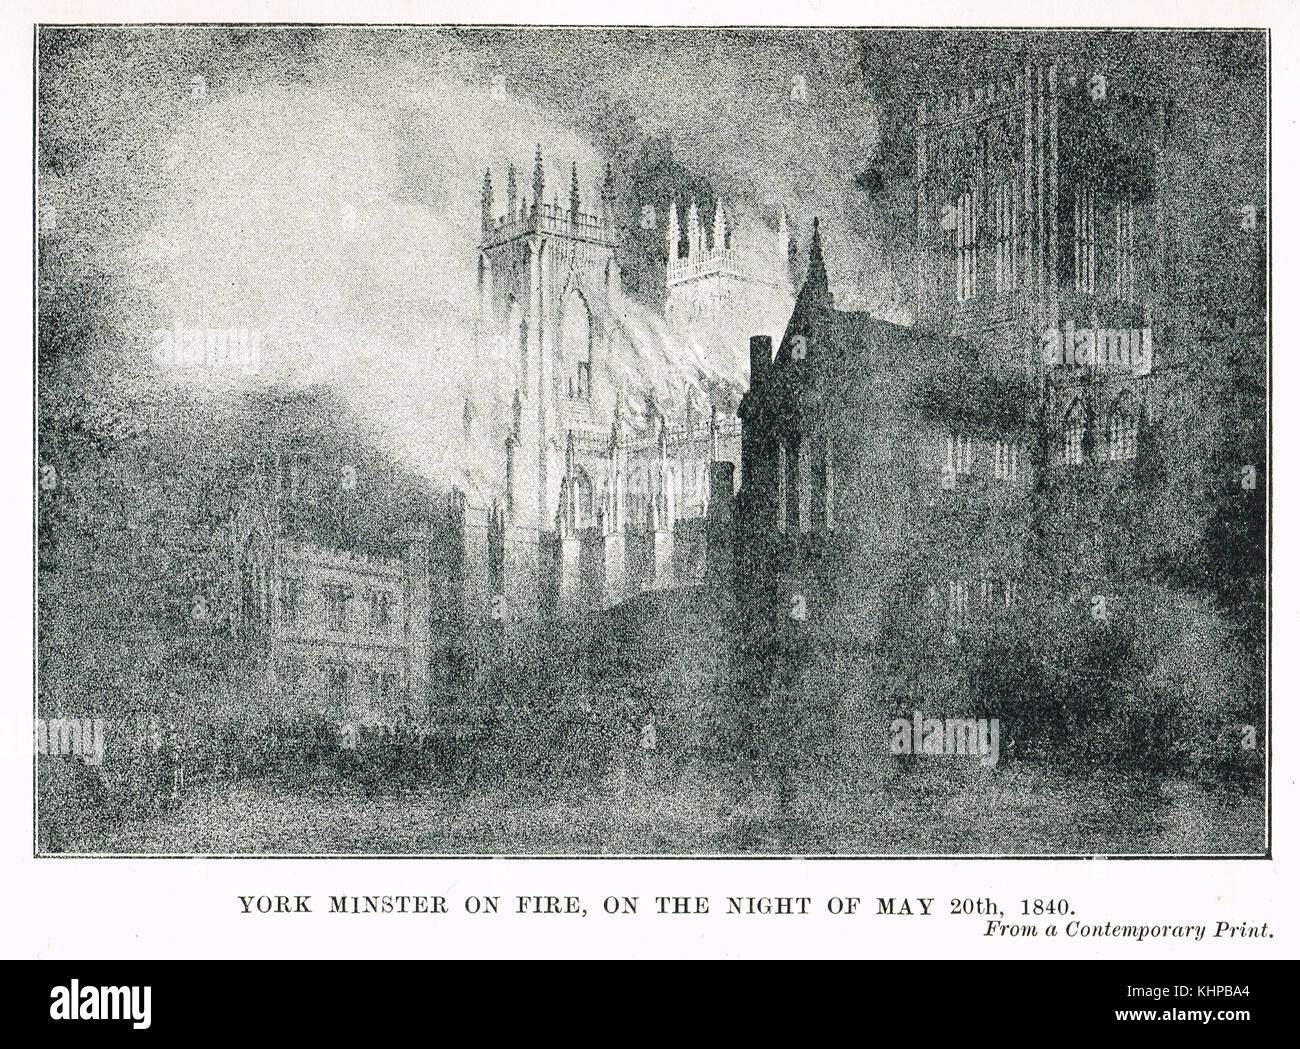 York Minster on fire, Night of 20 May 1840 - Stock Image